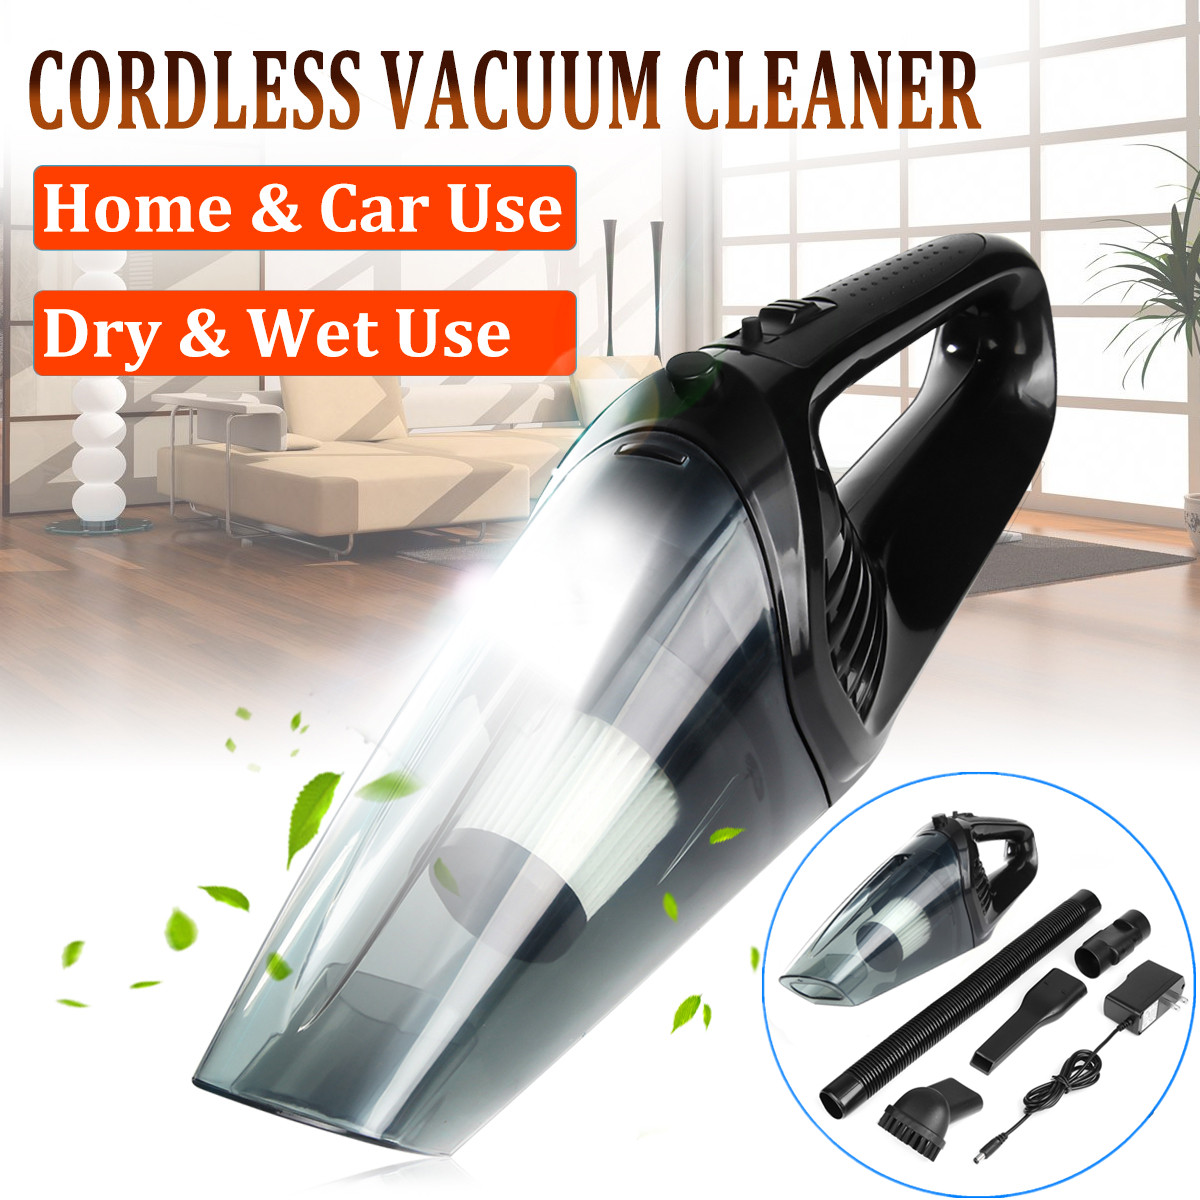 120W Powerful Handheld Cordless Car Home Vacuum Cleaner Quiet Dry&Wet Use with LED